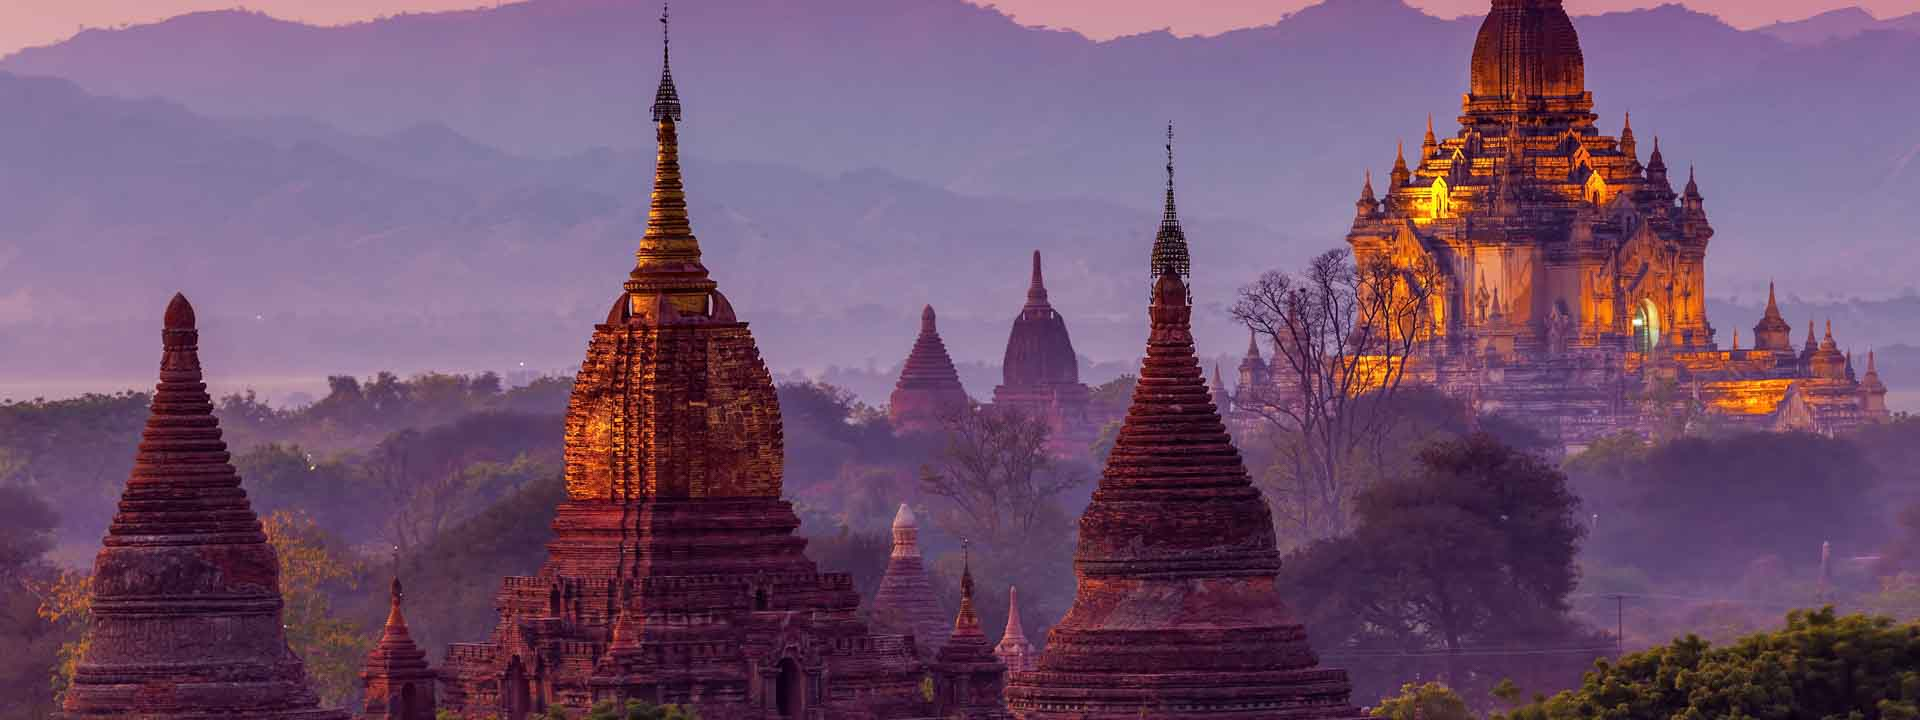 Luxuries and Mysteries of Myanmar 10 days